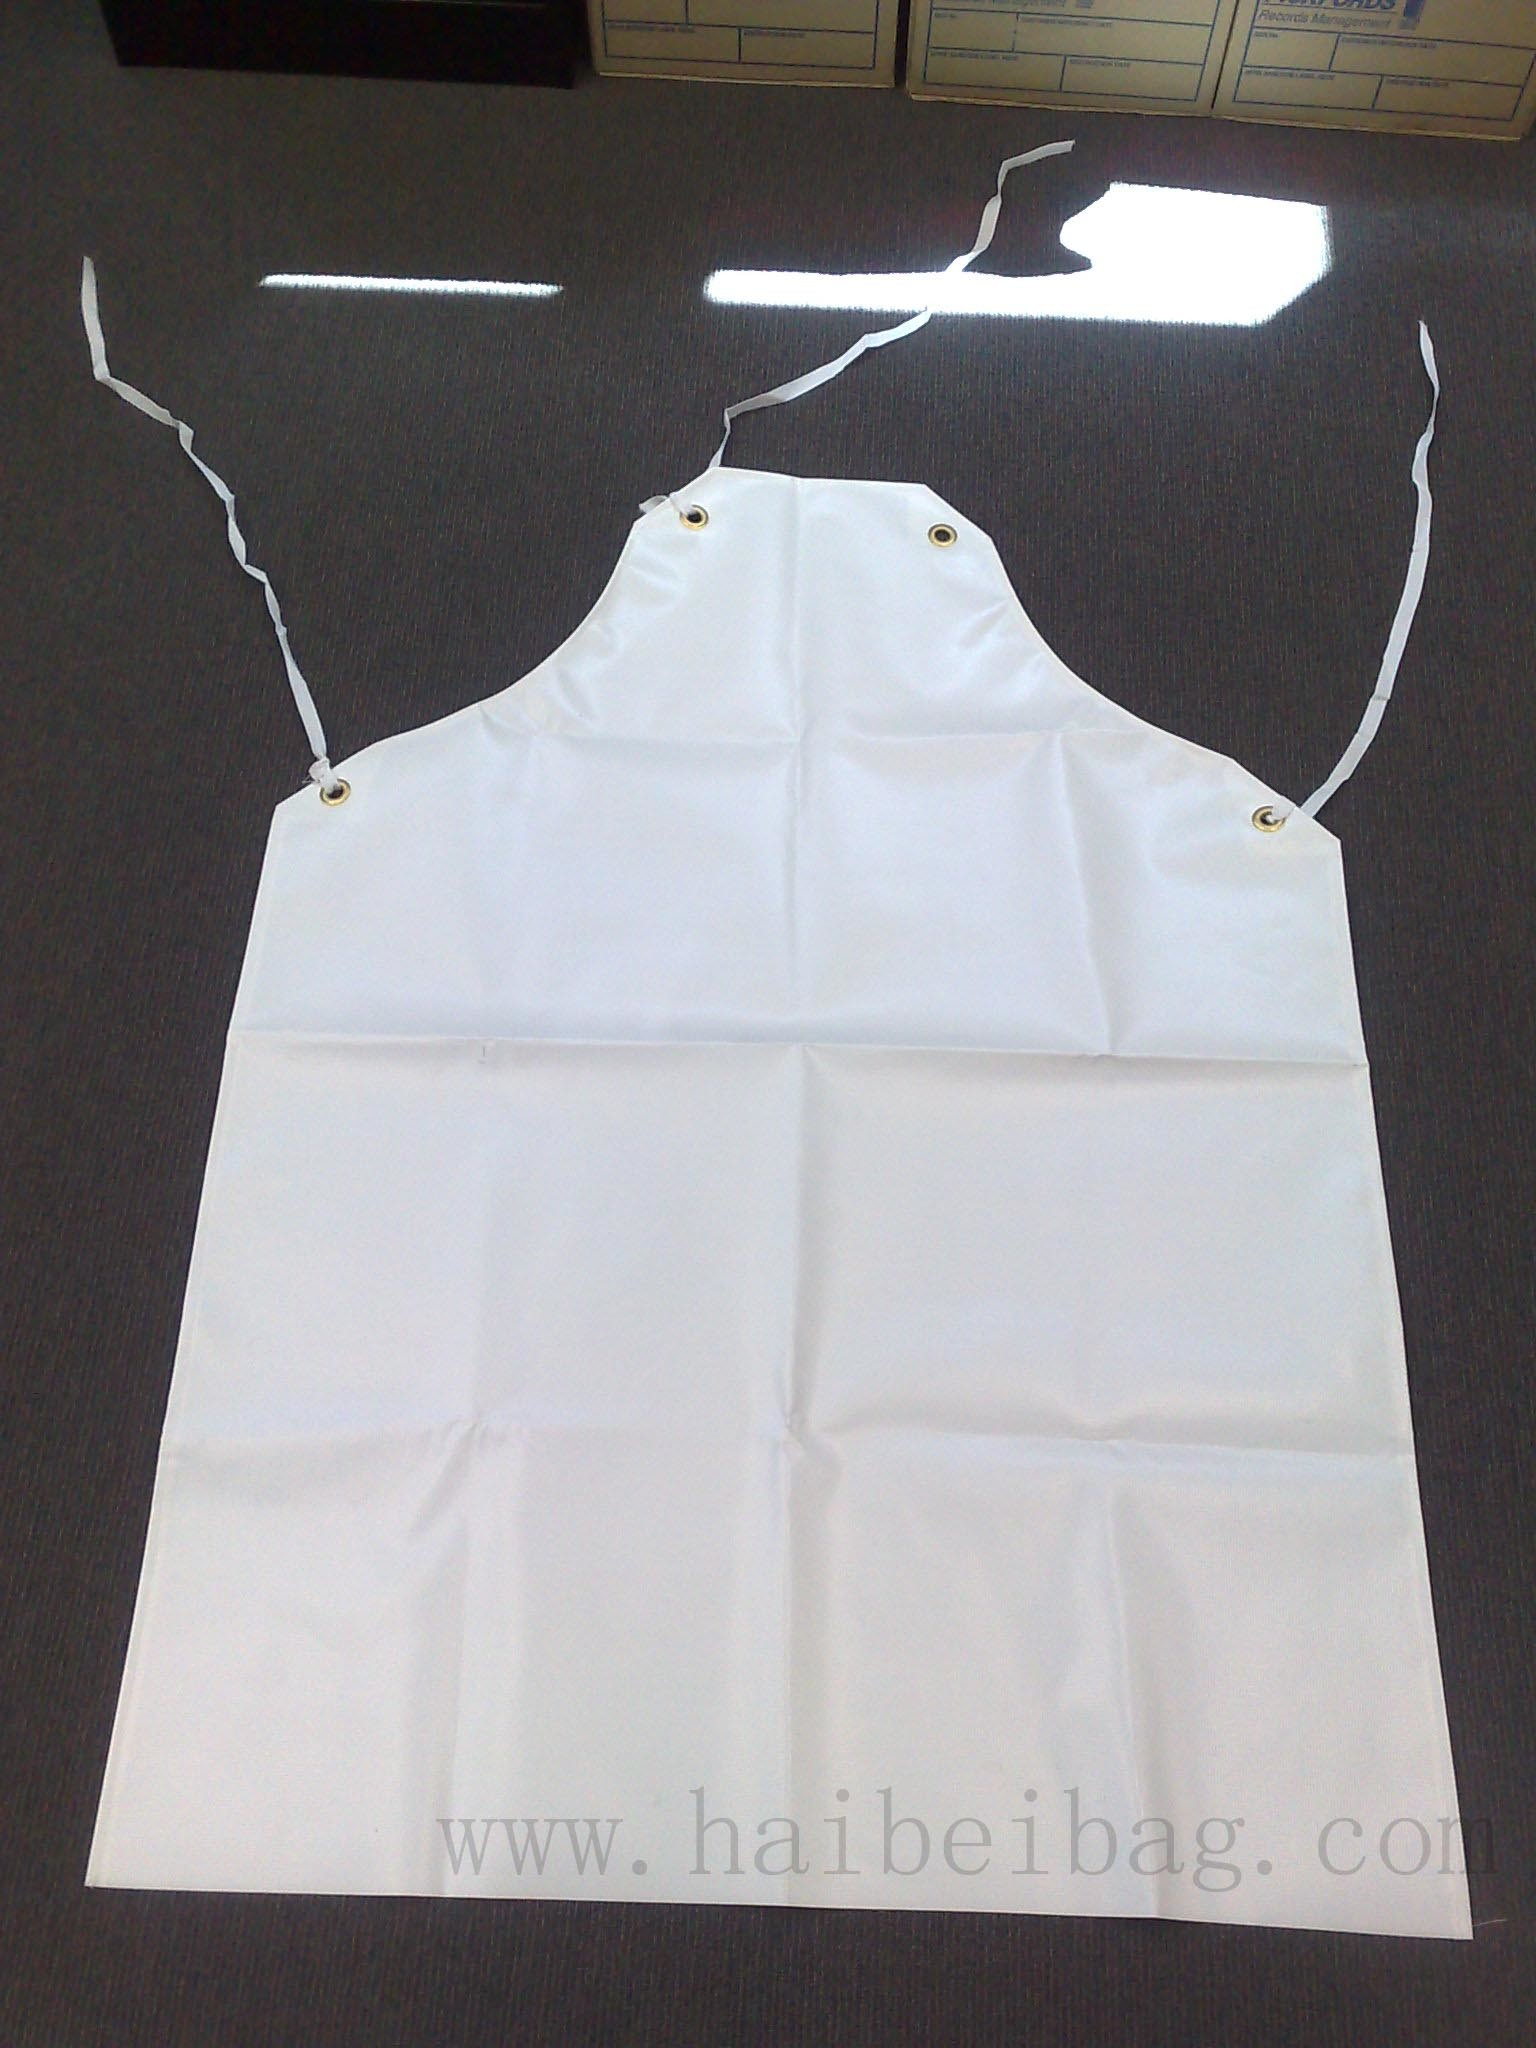 Anti-Acid Rubber /PVC Butcher Apron for Slaughter House (HBAP-2)